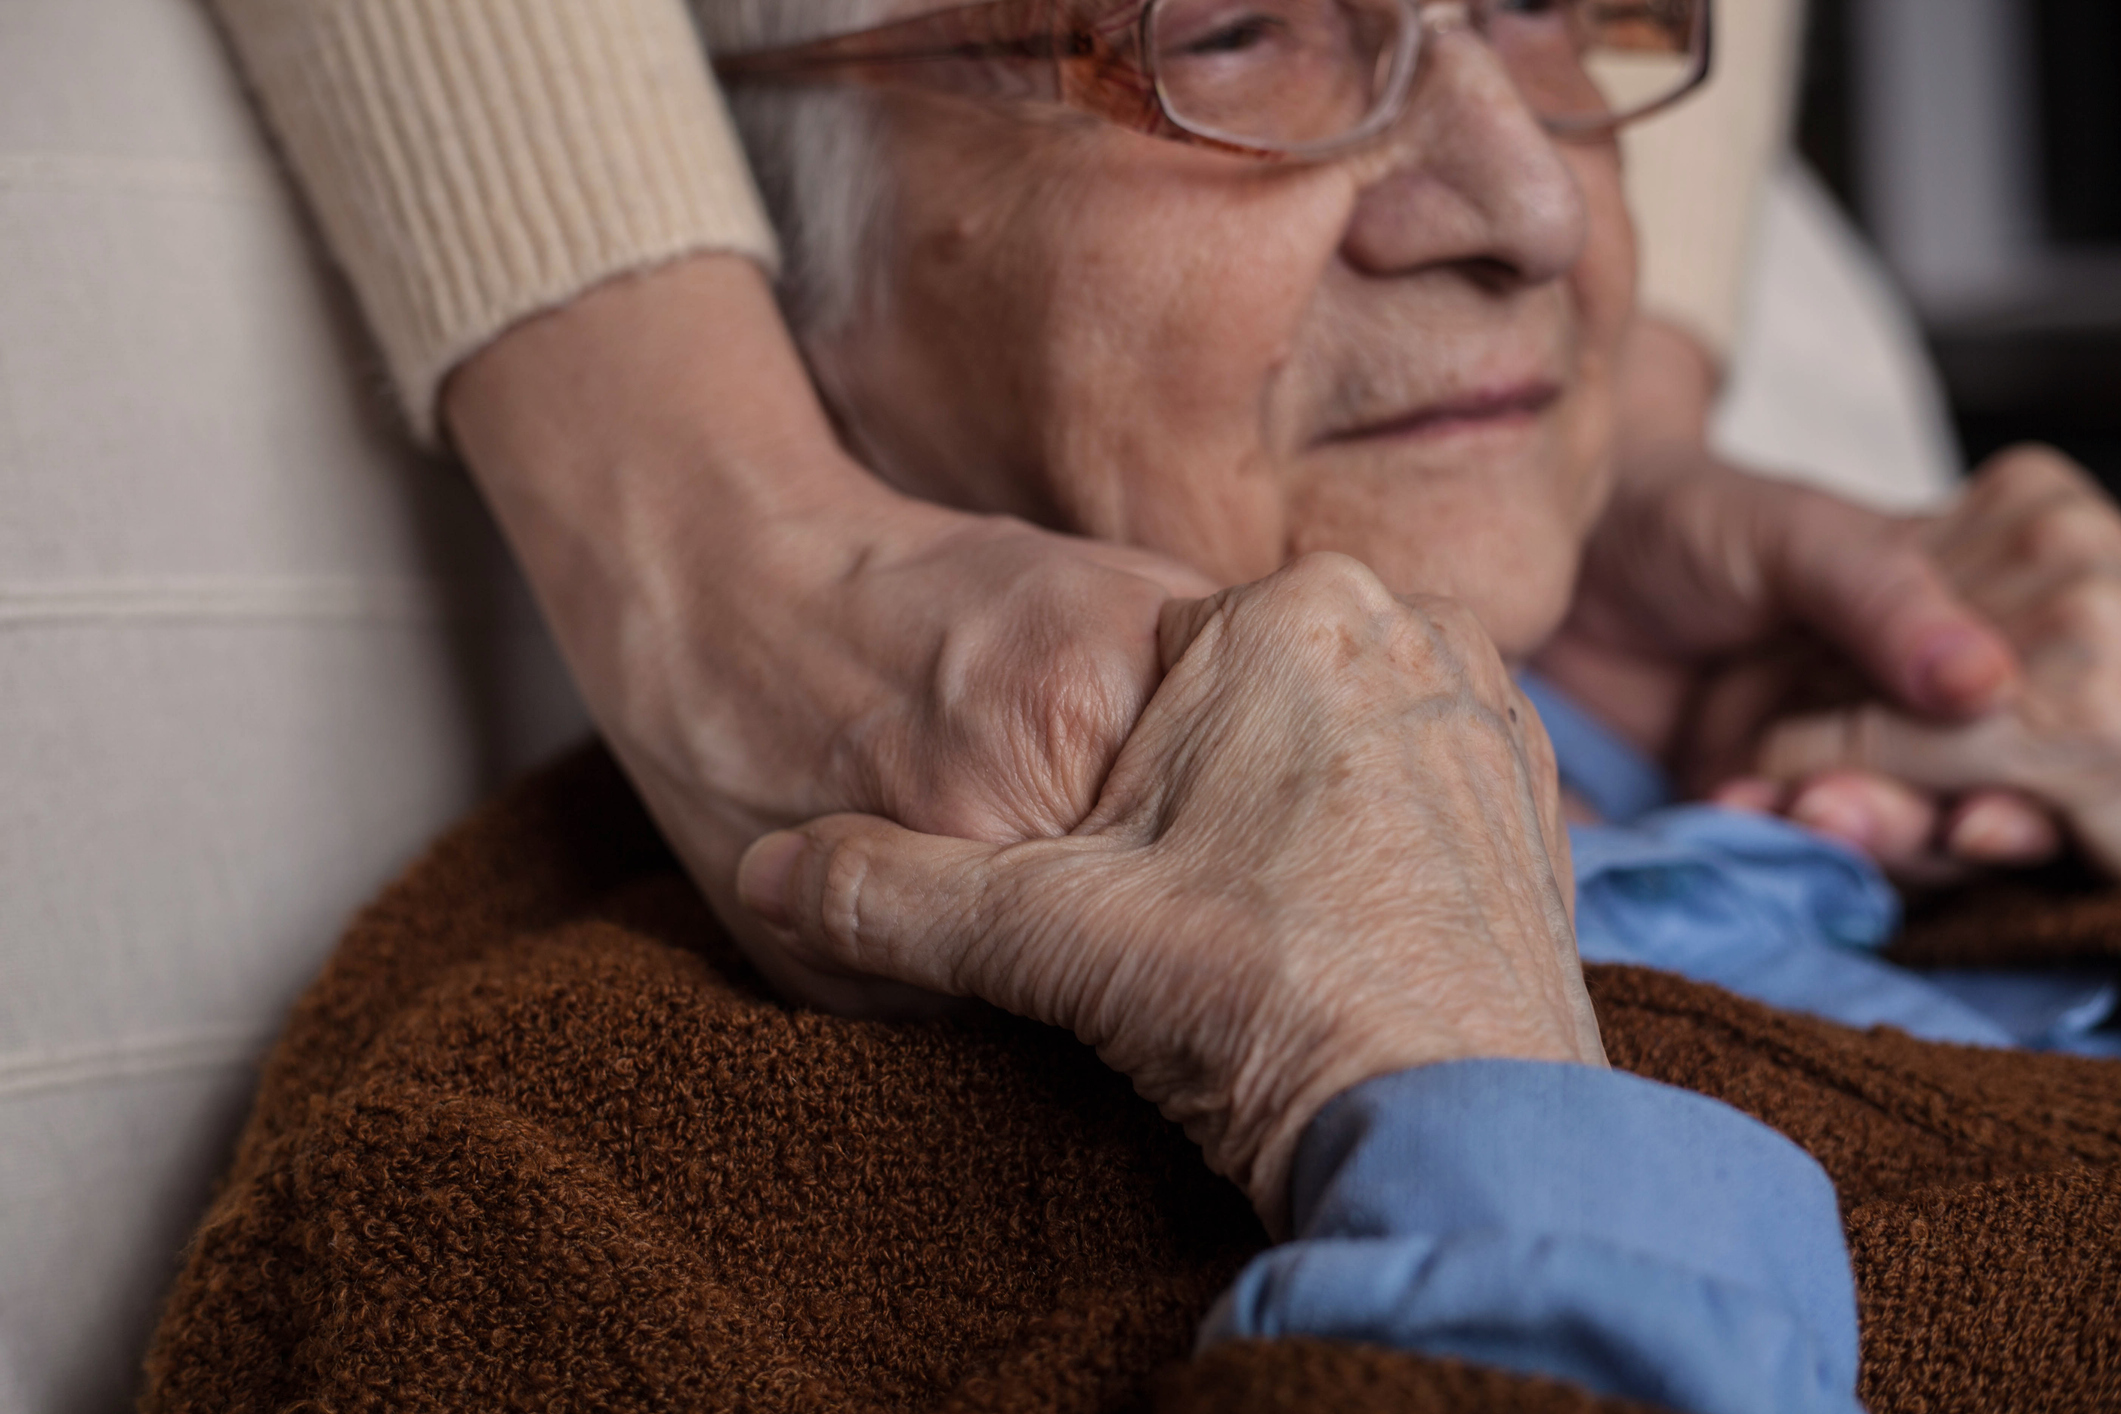 These care tips can help with late stage Alzheimer's symptoms.